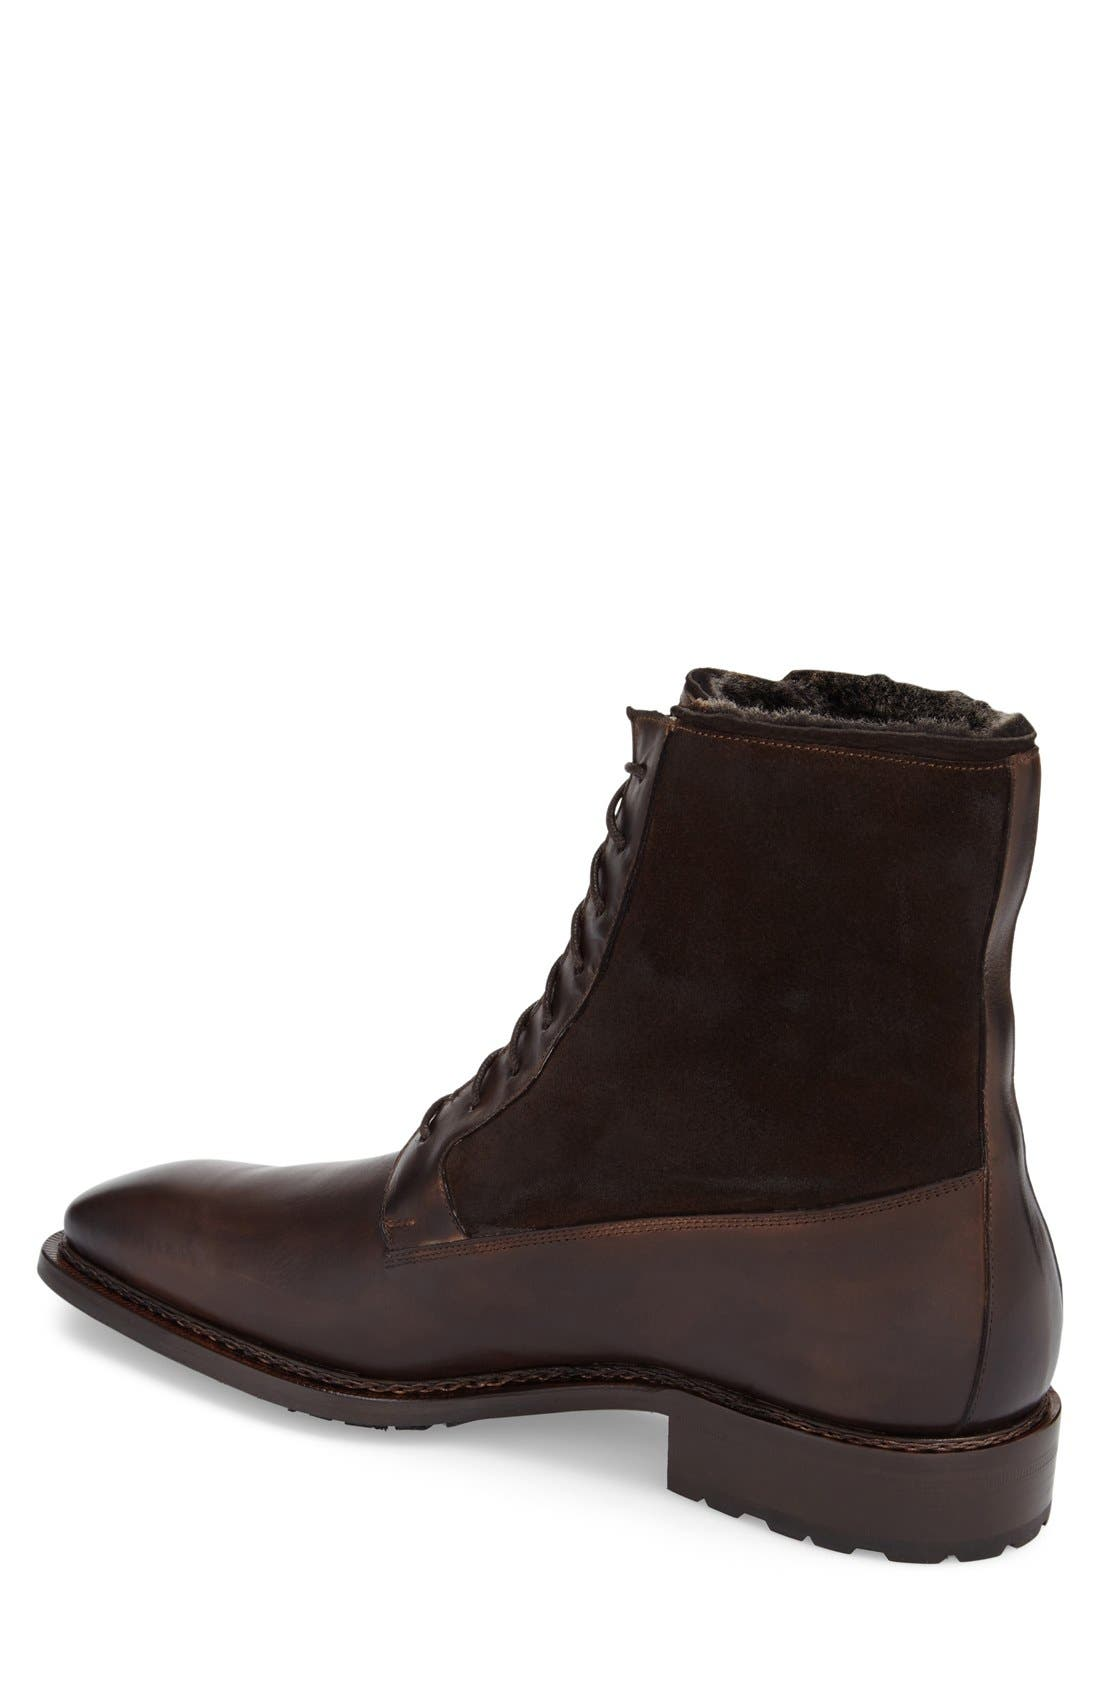 Alternate Image 2  - Mezlan 'Luzern' Genuine Shearling Boot (Men)